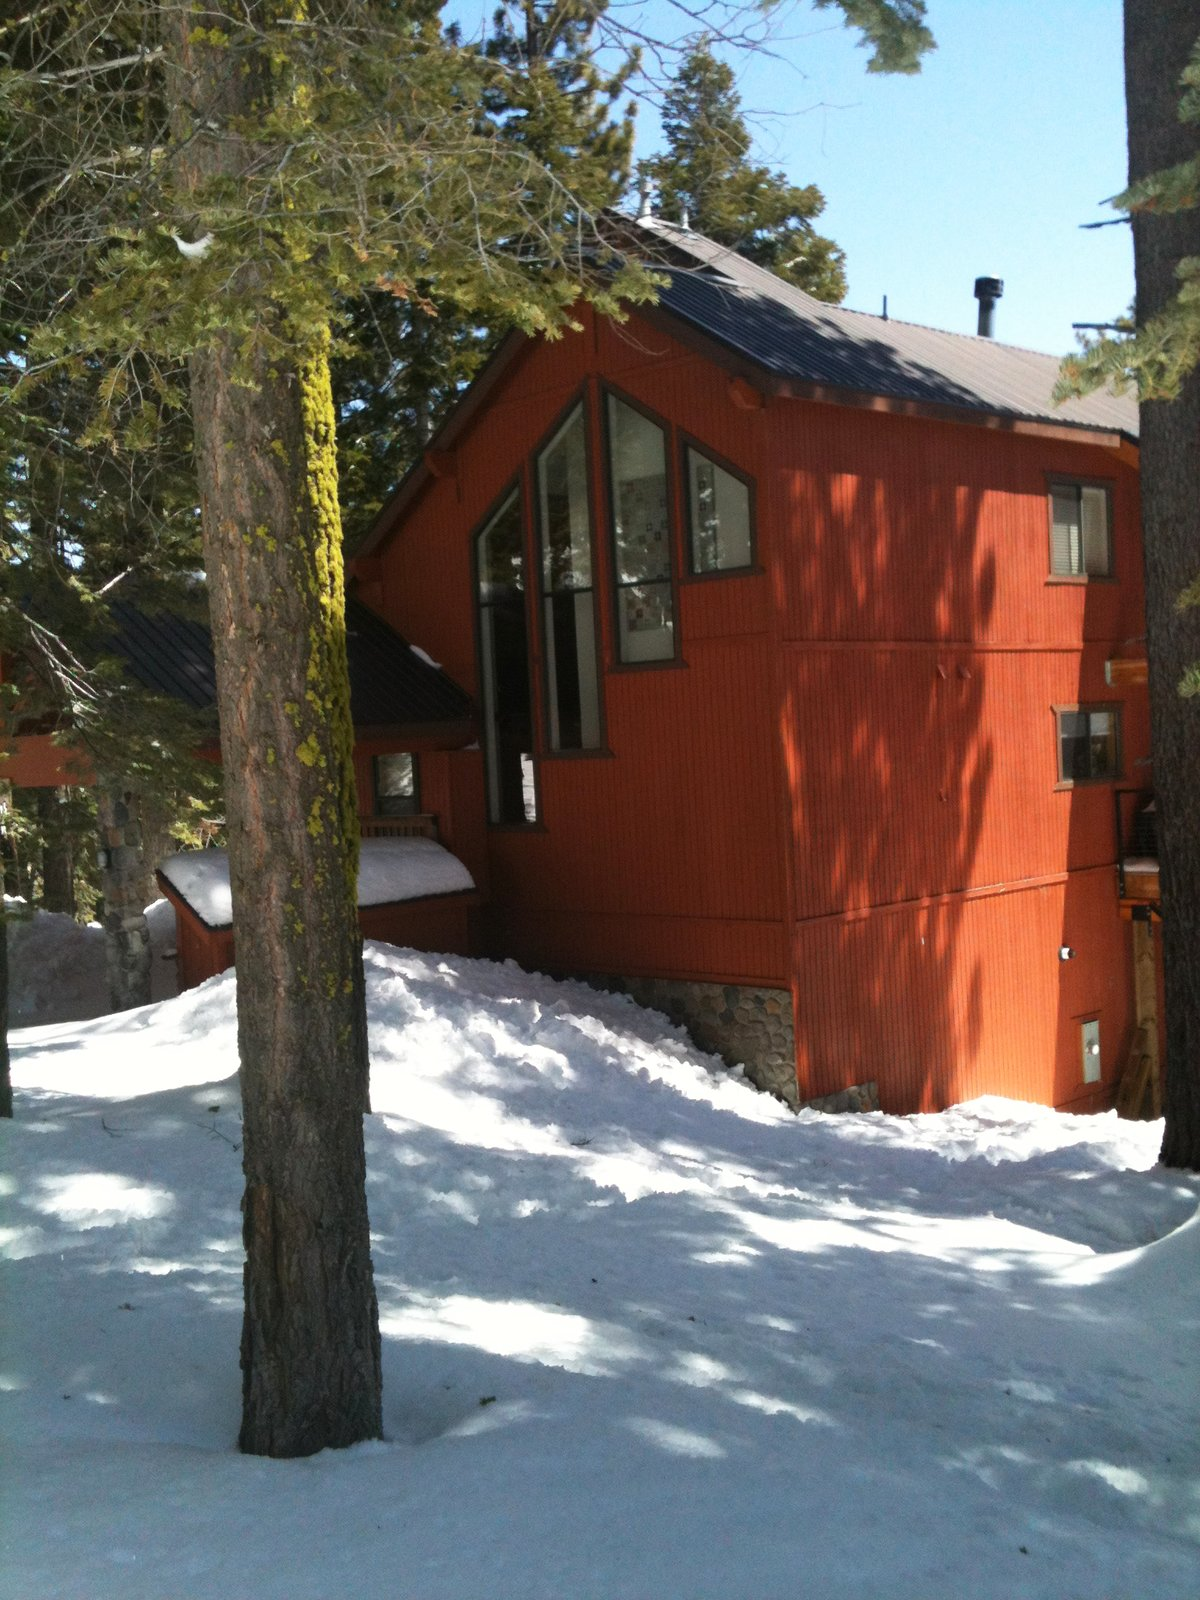 Amidst the brown natural tones of the surrounding cabins, this orange-red exterior pops. The contrasting charcoal trim and coordinated art in the window pull the whole thing together.  Cabin by kassidydavies@gmail.com from Snow in Bear Valley